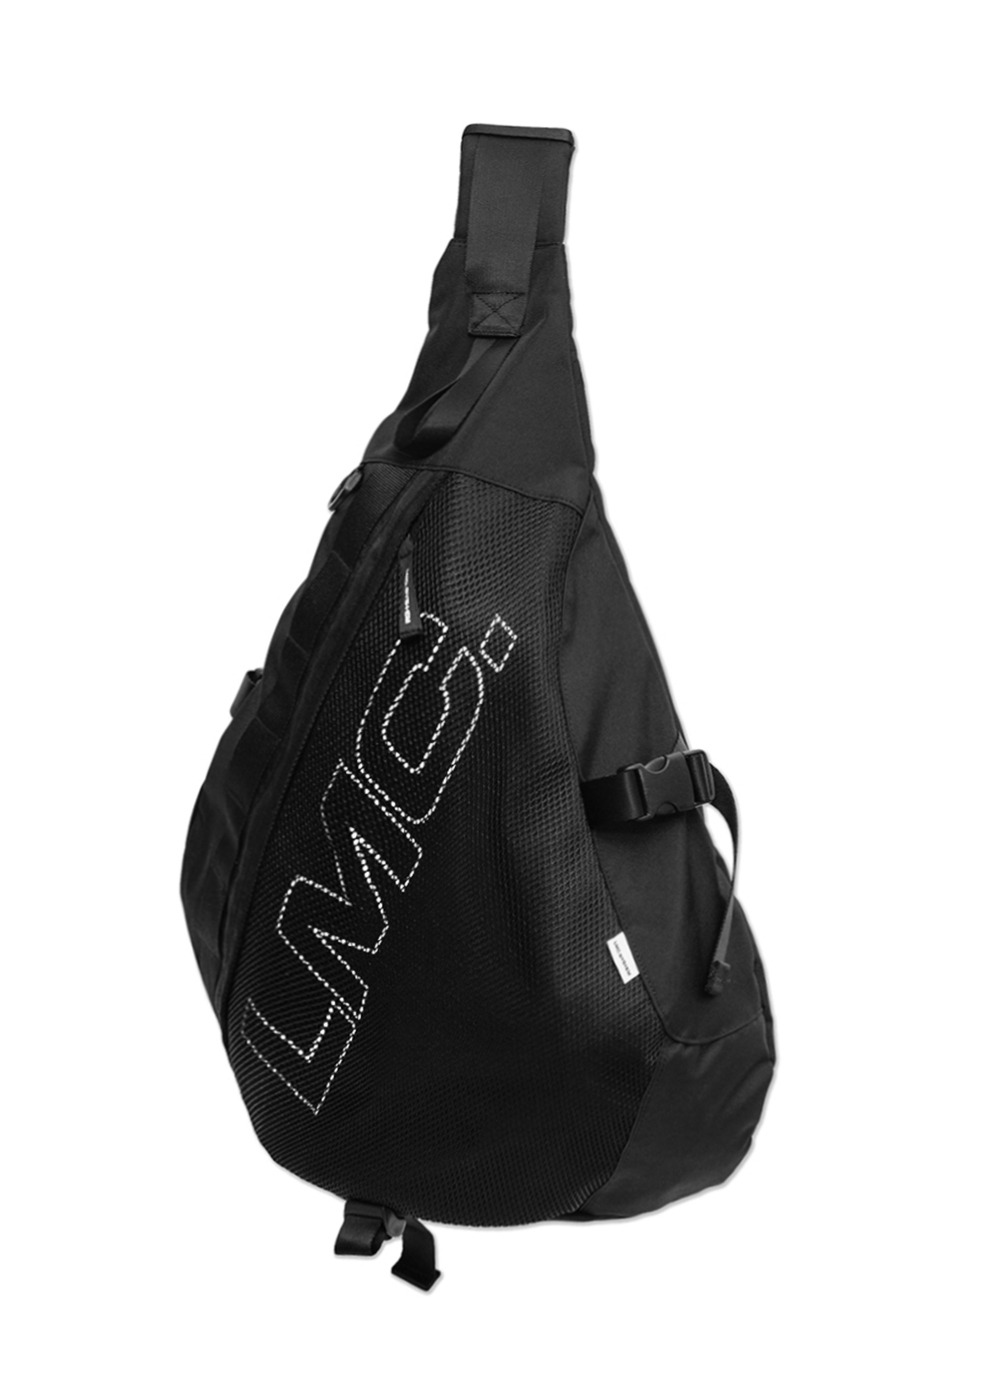 LMC SYSTEM TACTICAL SLING BAG black